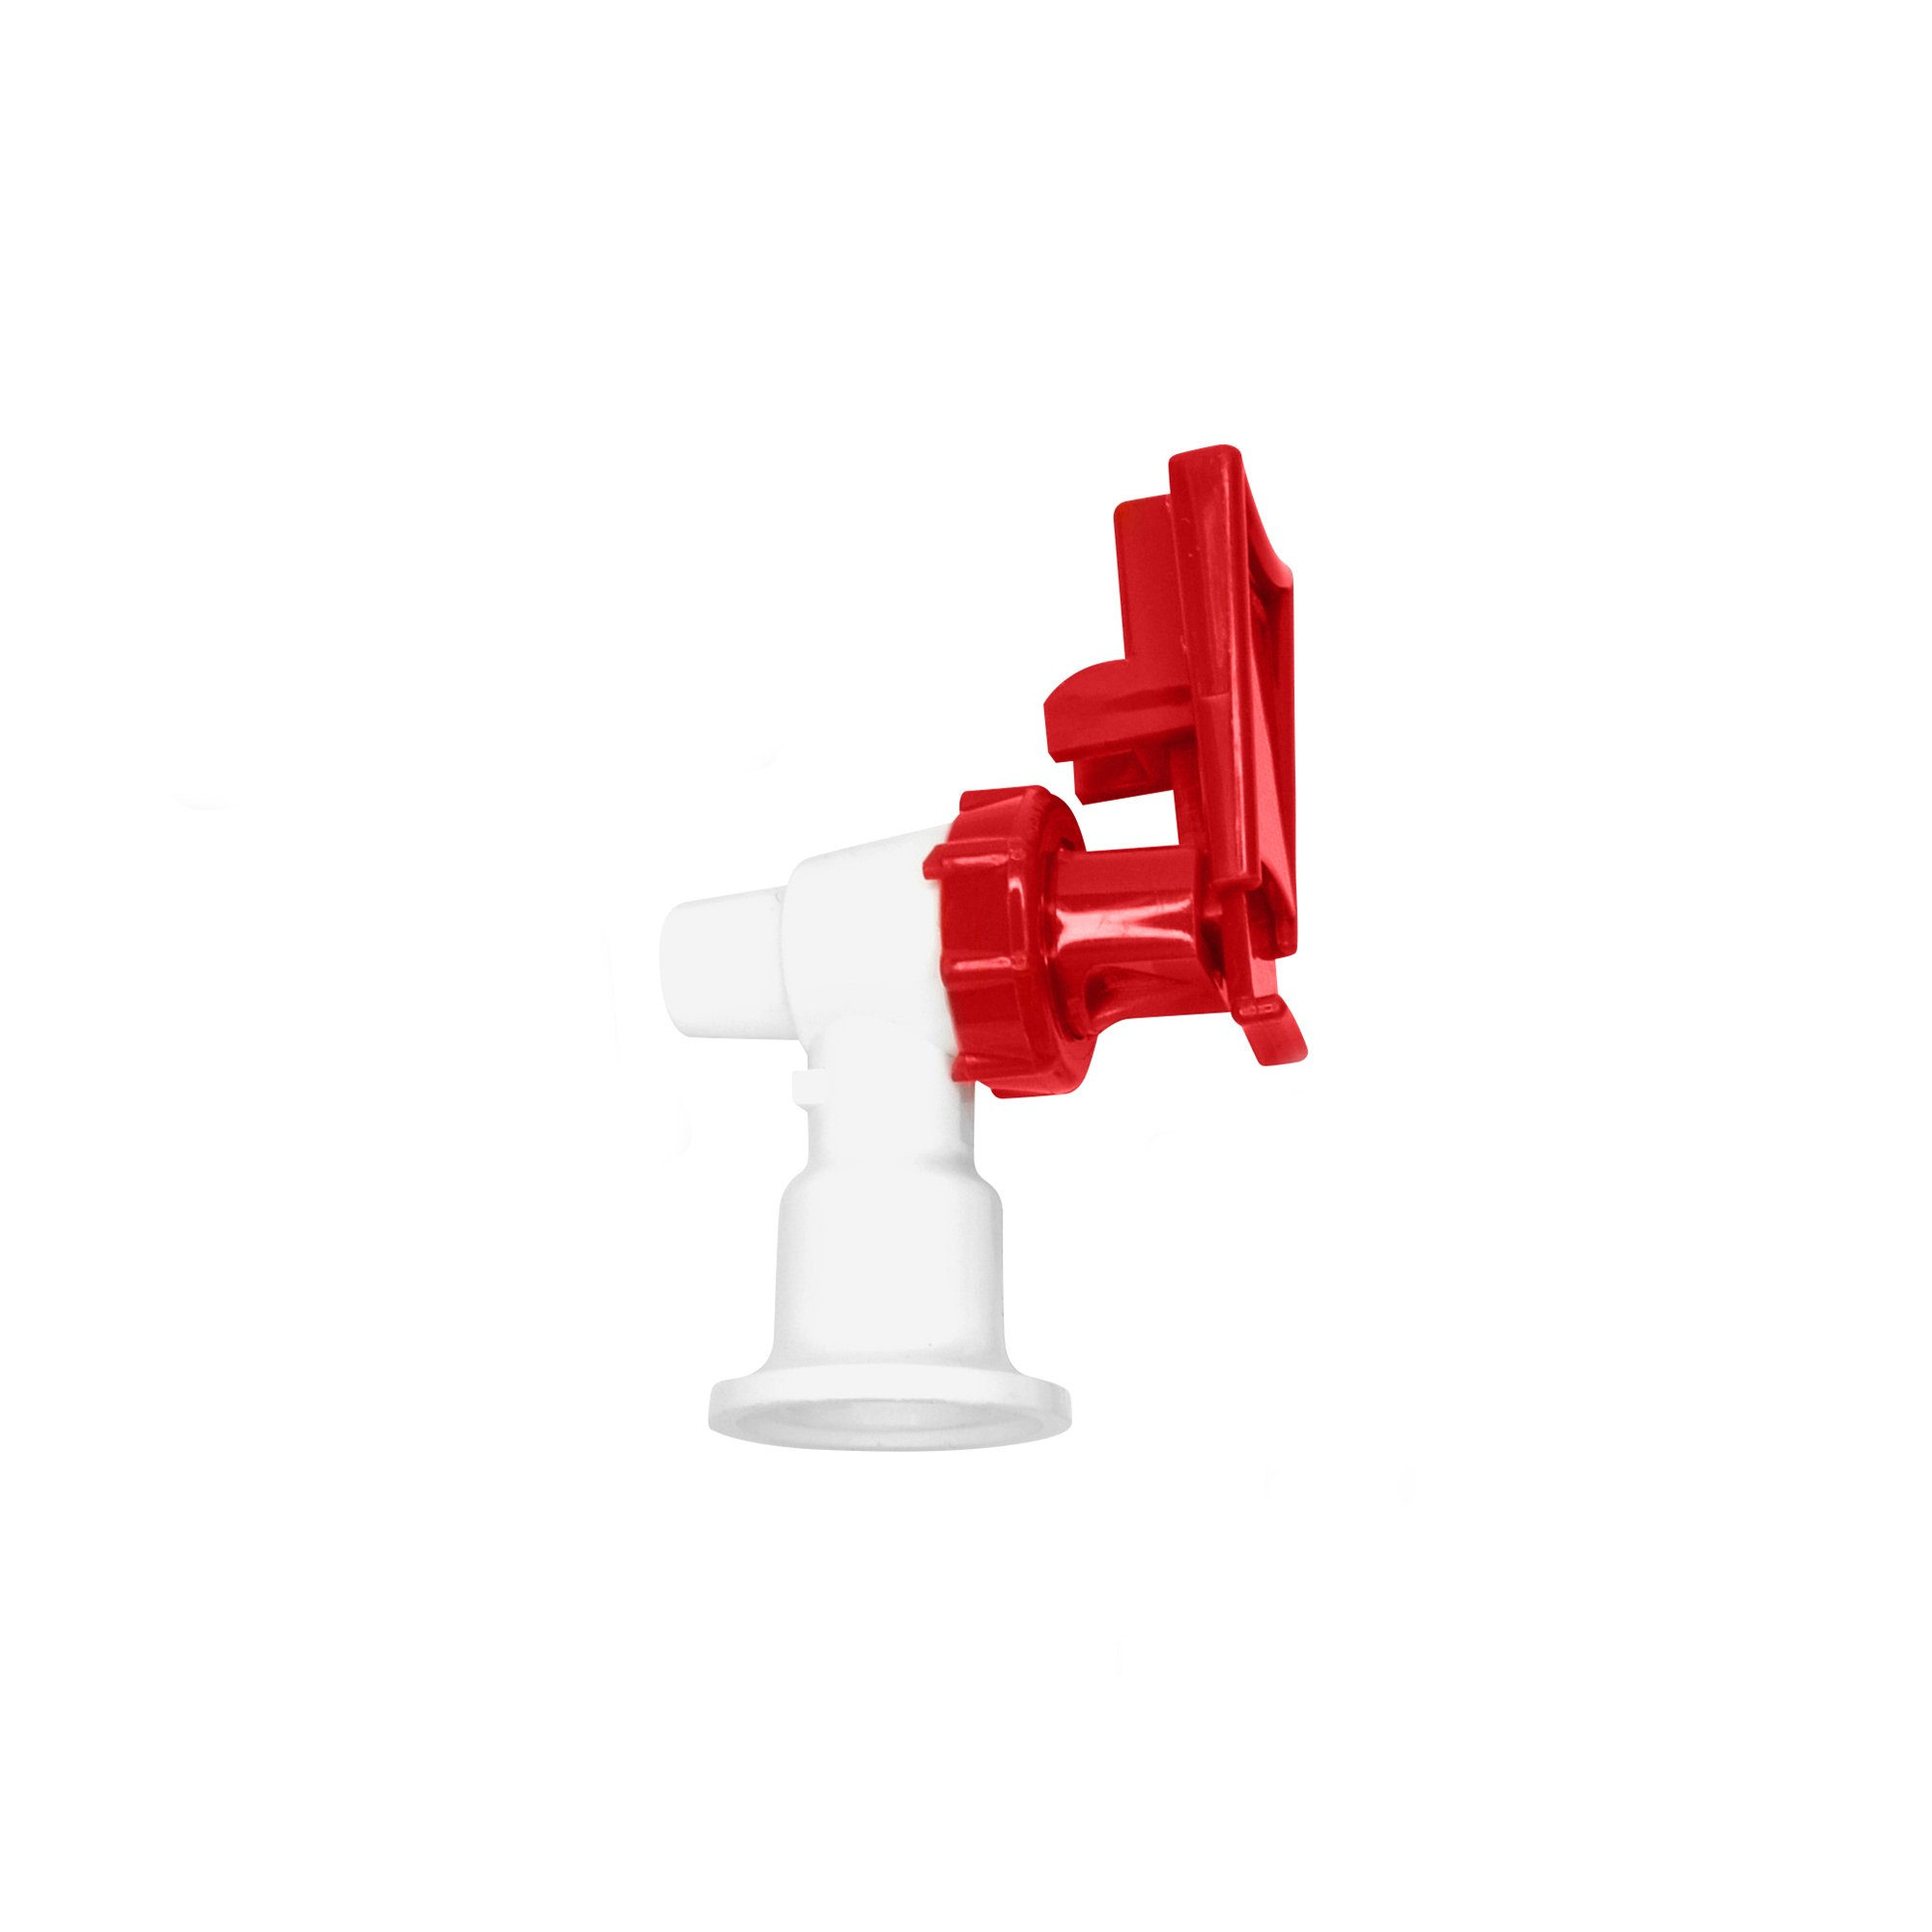 Tomlinson 1009470 White Cooler Replacement Faucet - Red Touch Guard